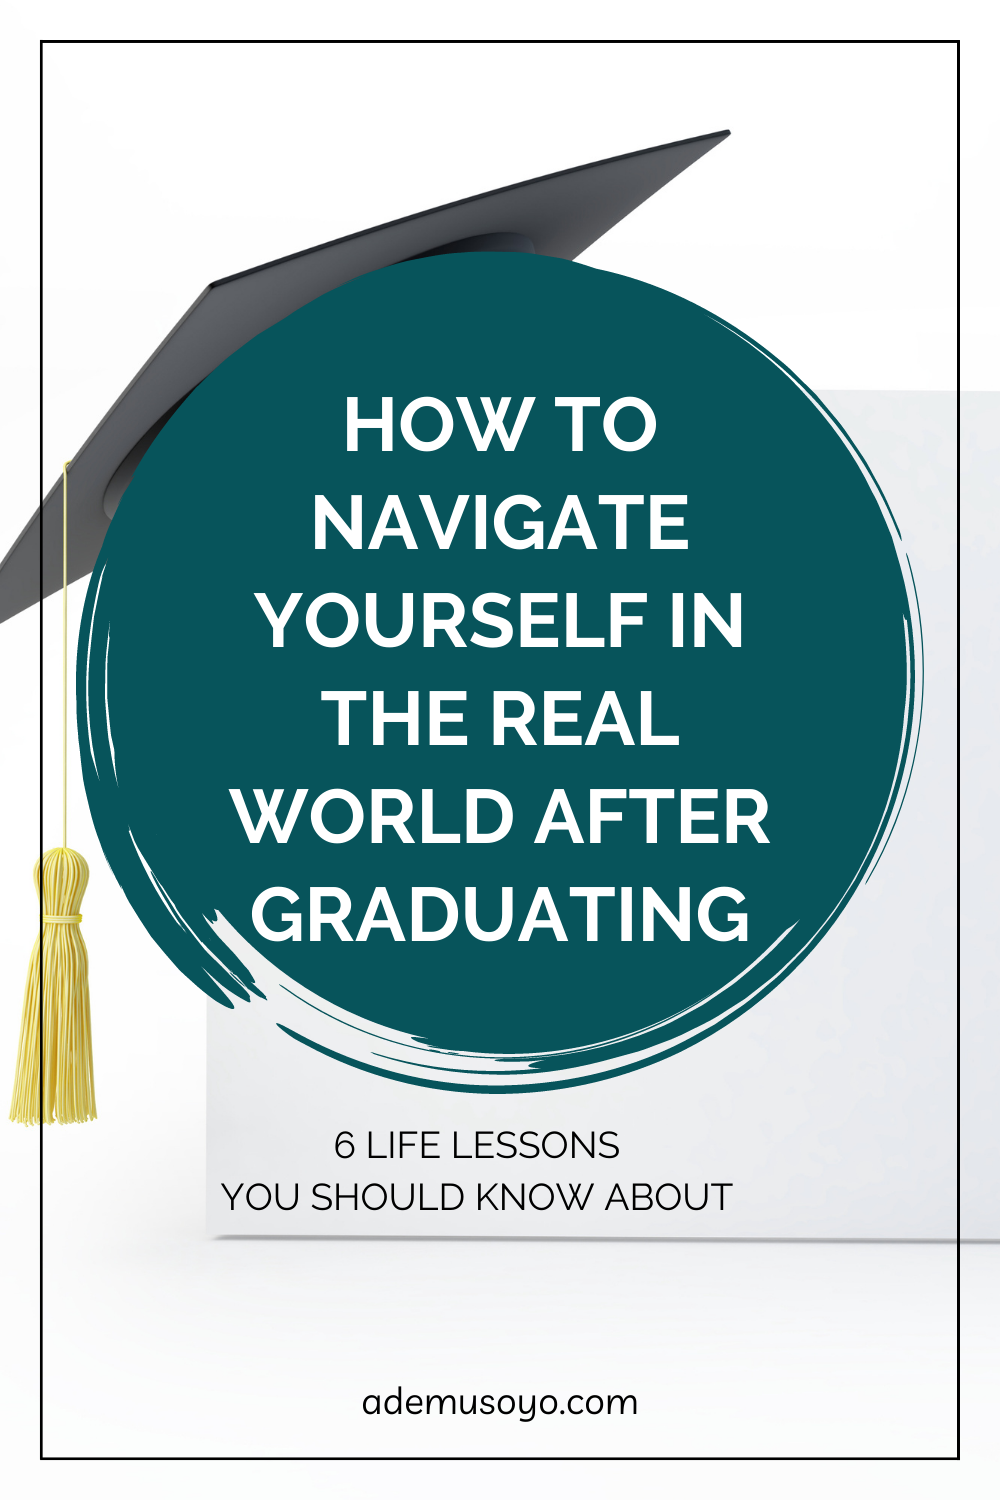 The Best Lessons I Learned Post Grad: My 5 Years Reflection